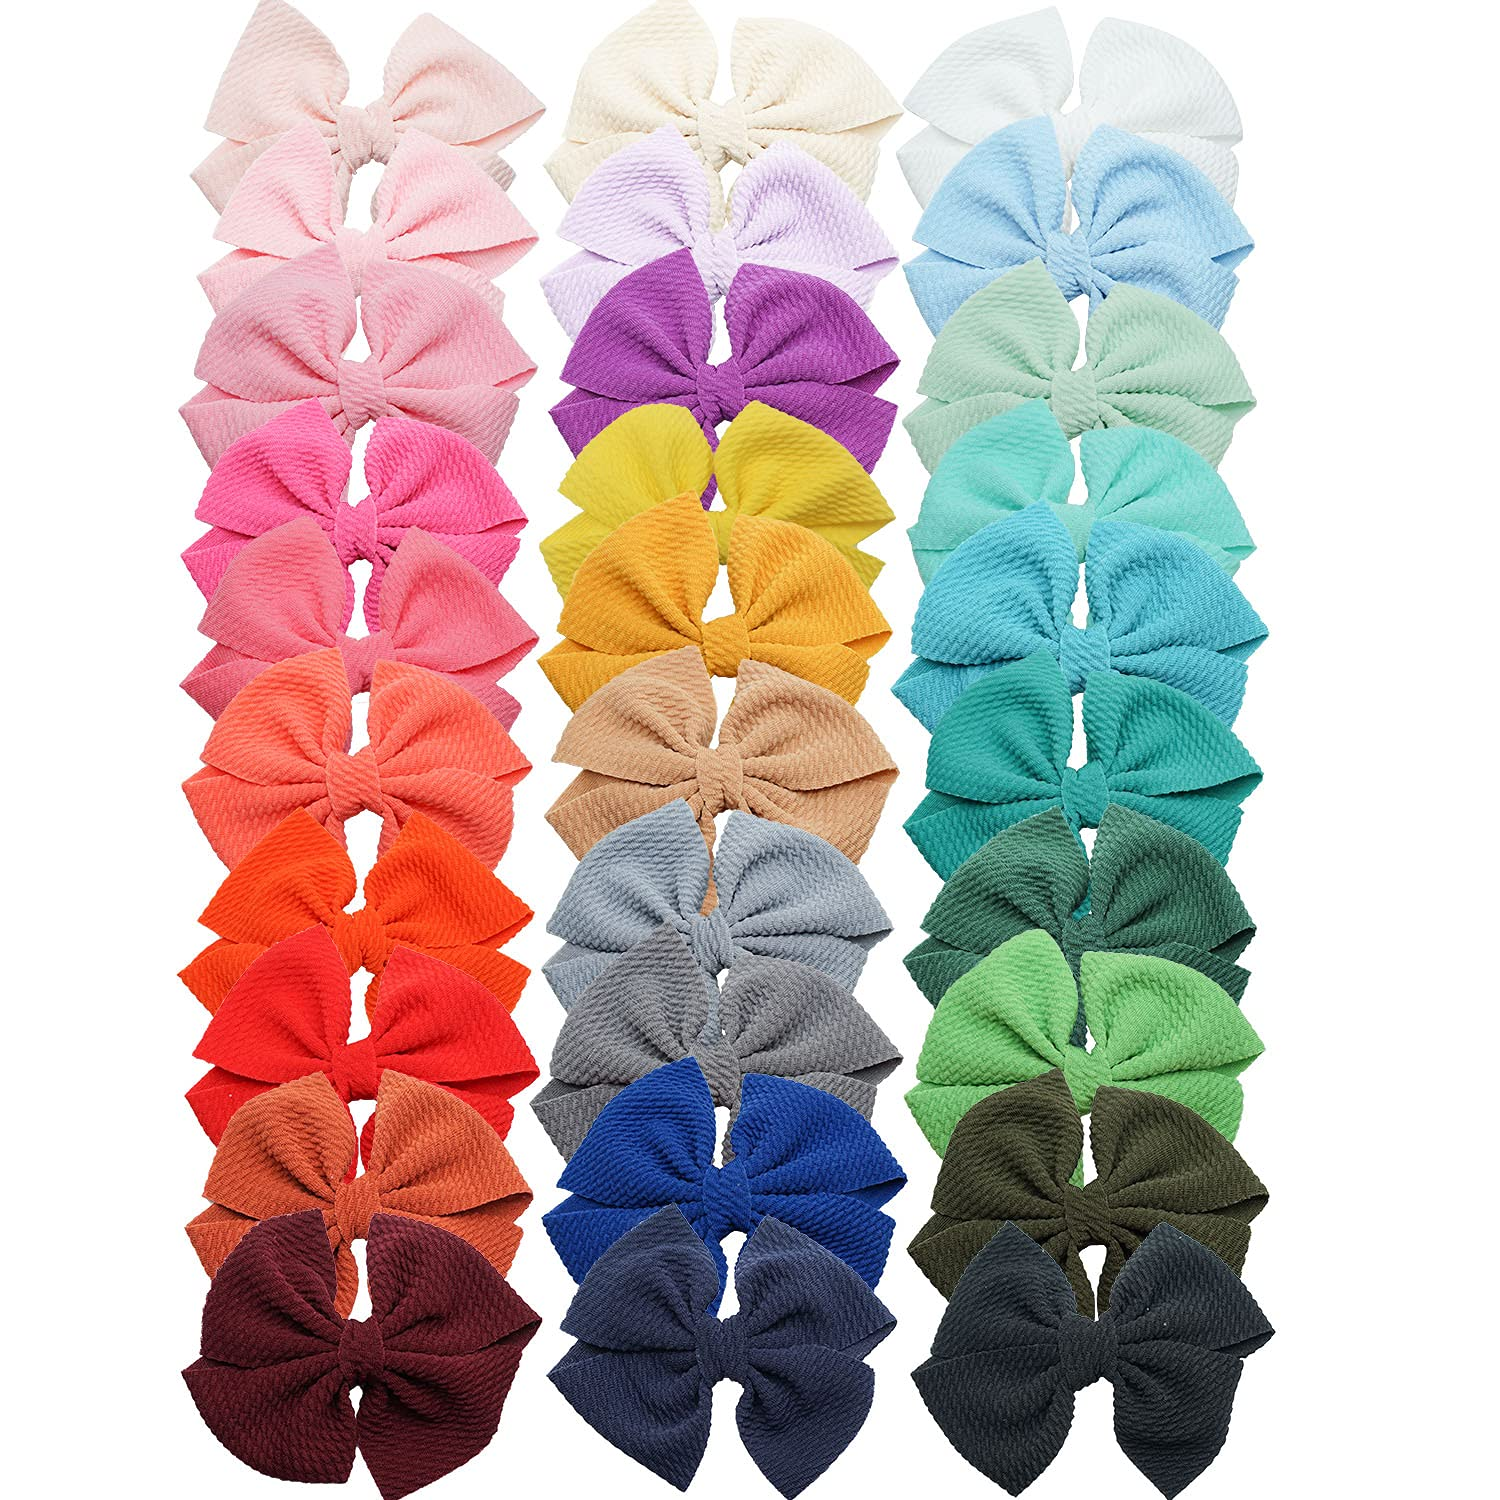 DeD 30 Colors 4.5 Inch Baby Girl Hair Bows with Alligator Clips Hair Barrettes Hair Accessories for Girls Toddler Infants Kids